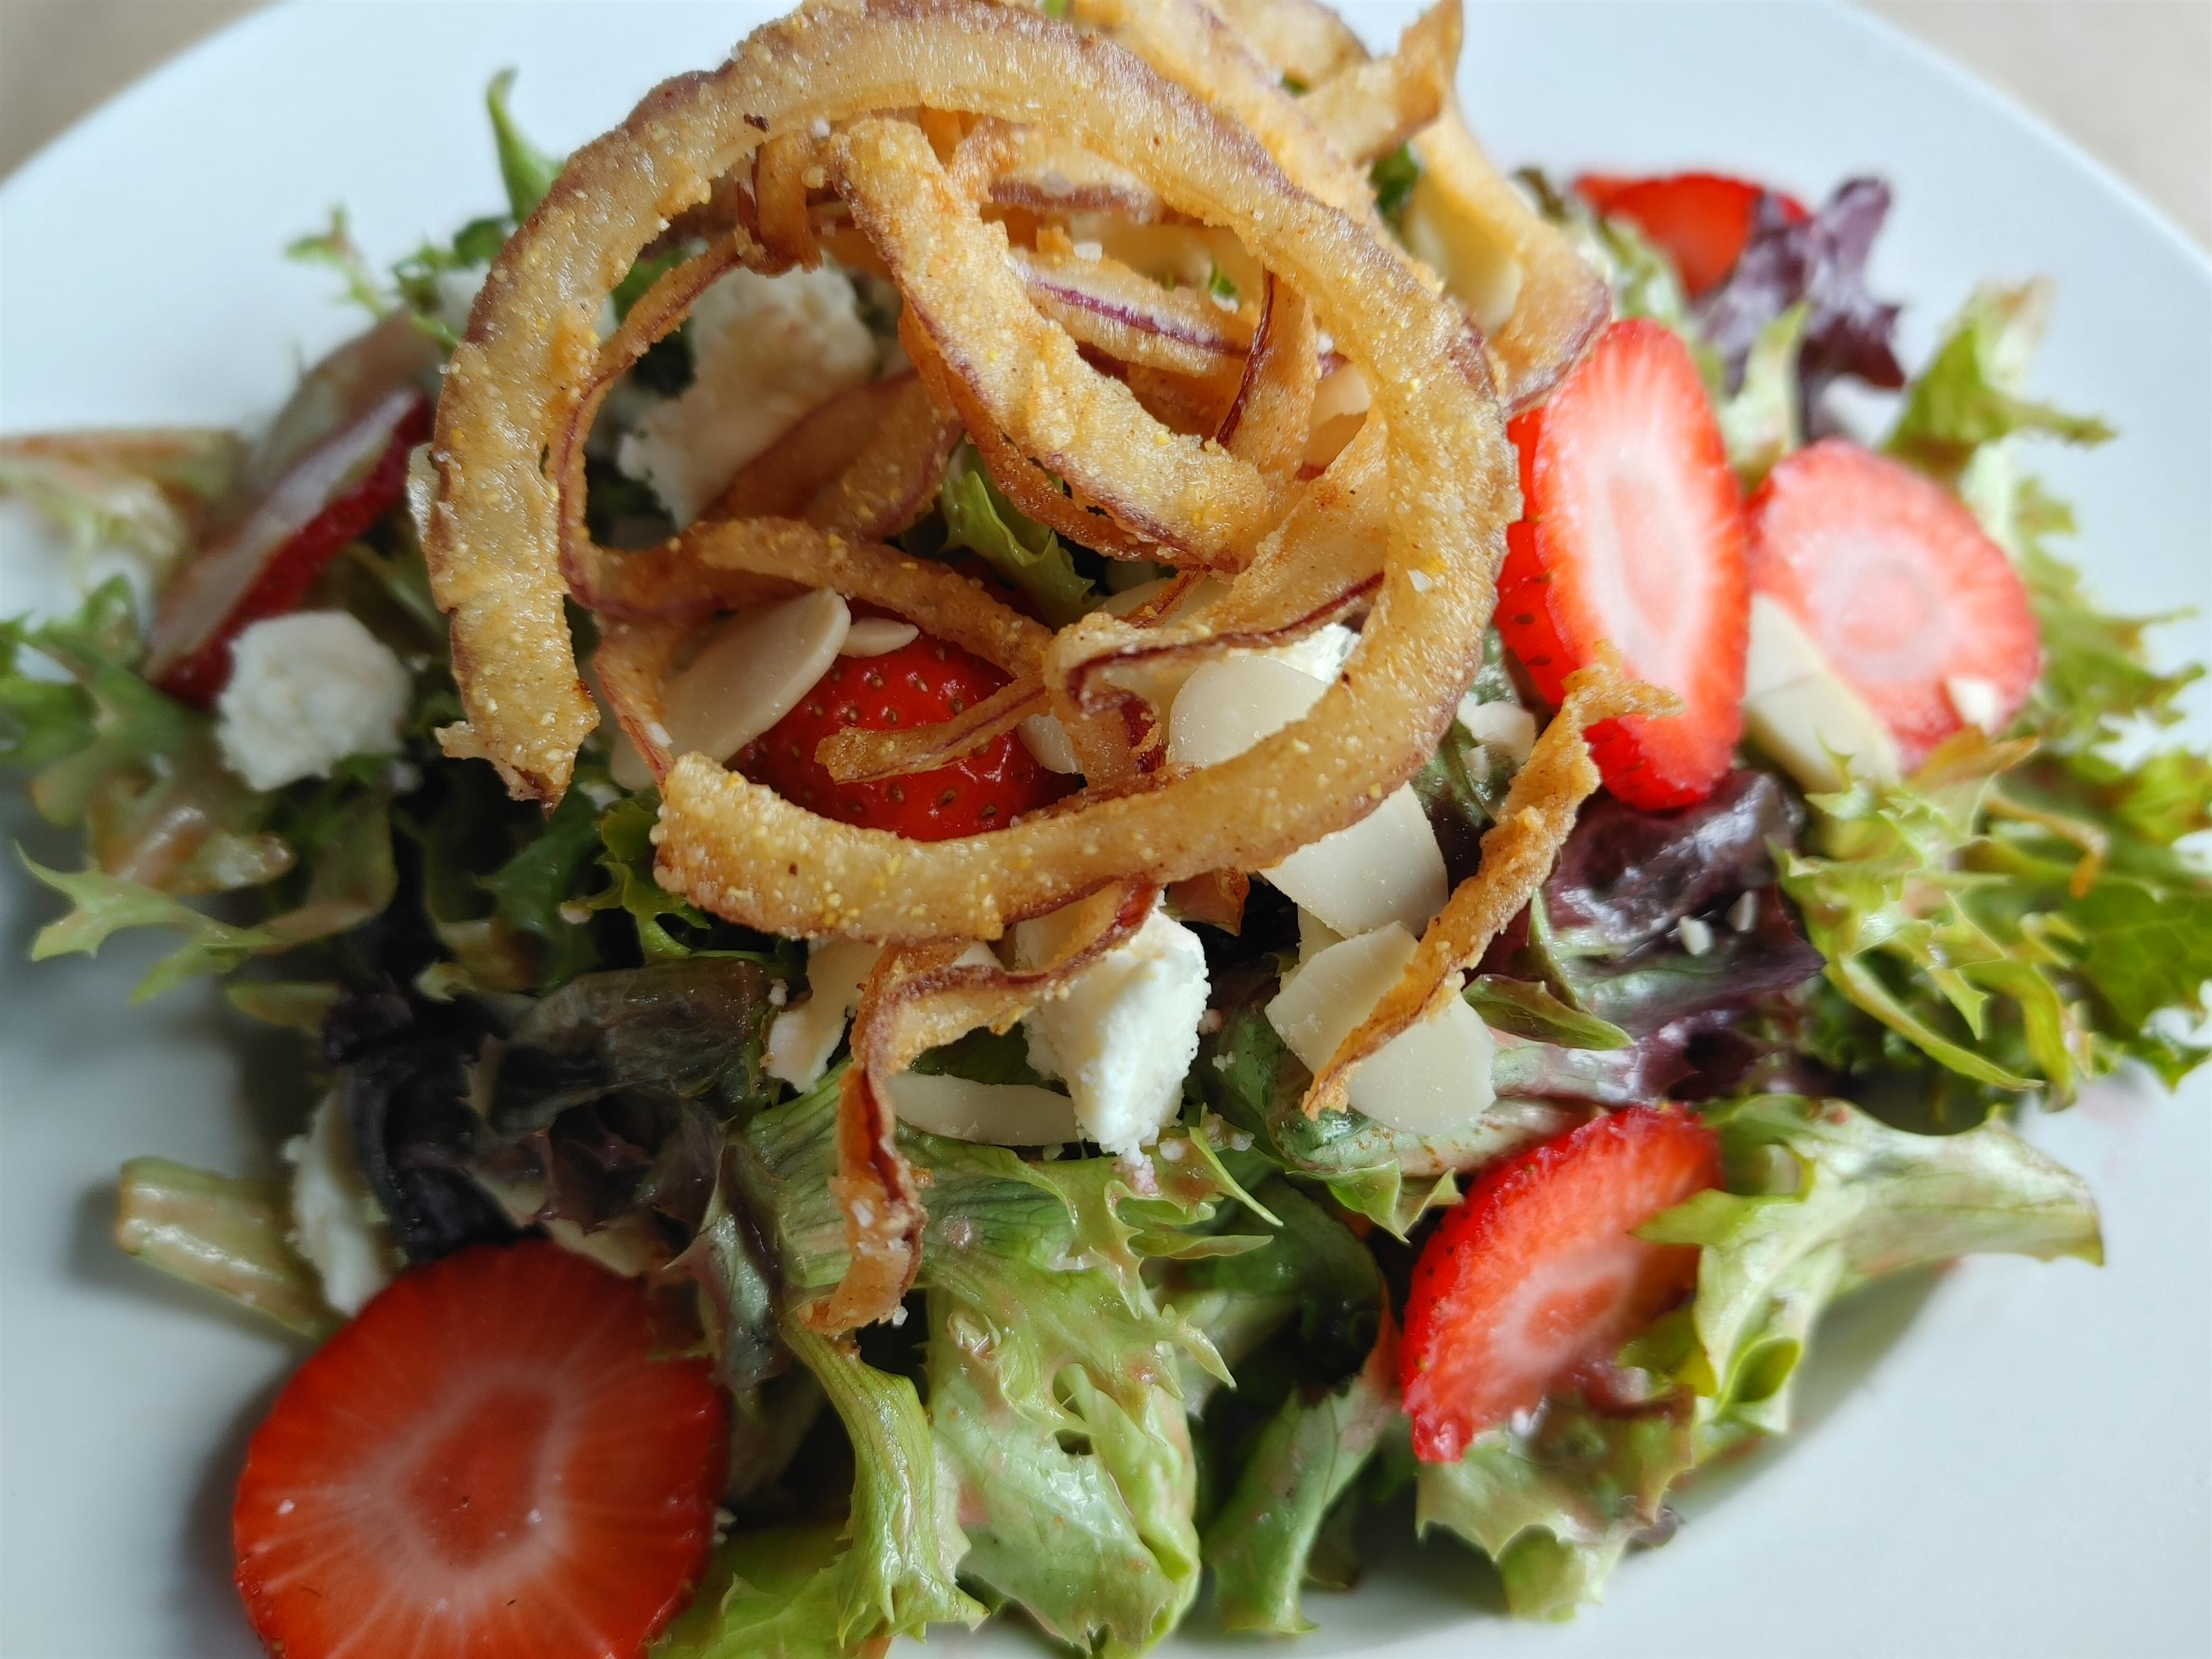 strawberry salad. mixed greens, fresh strawberries, almonds, and feta tossed in a strawberry vinaigrette and topped with crispy onions